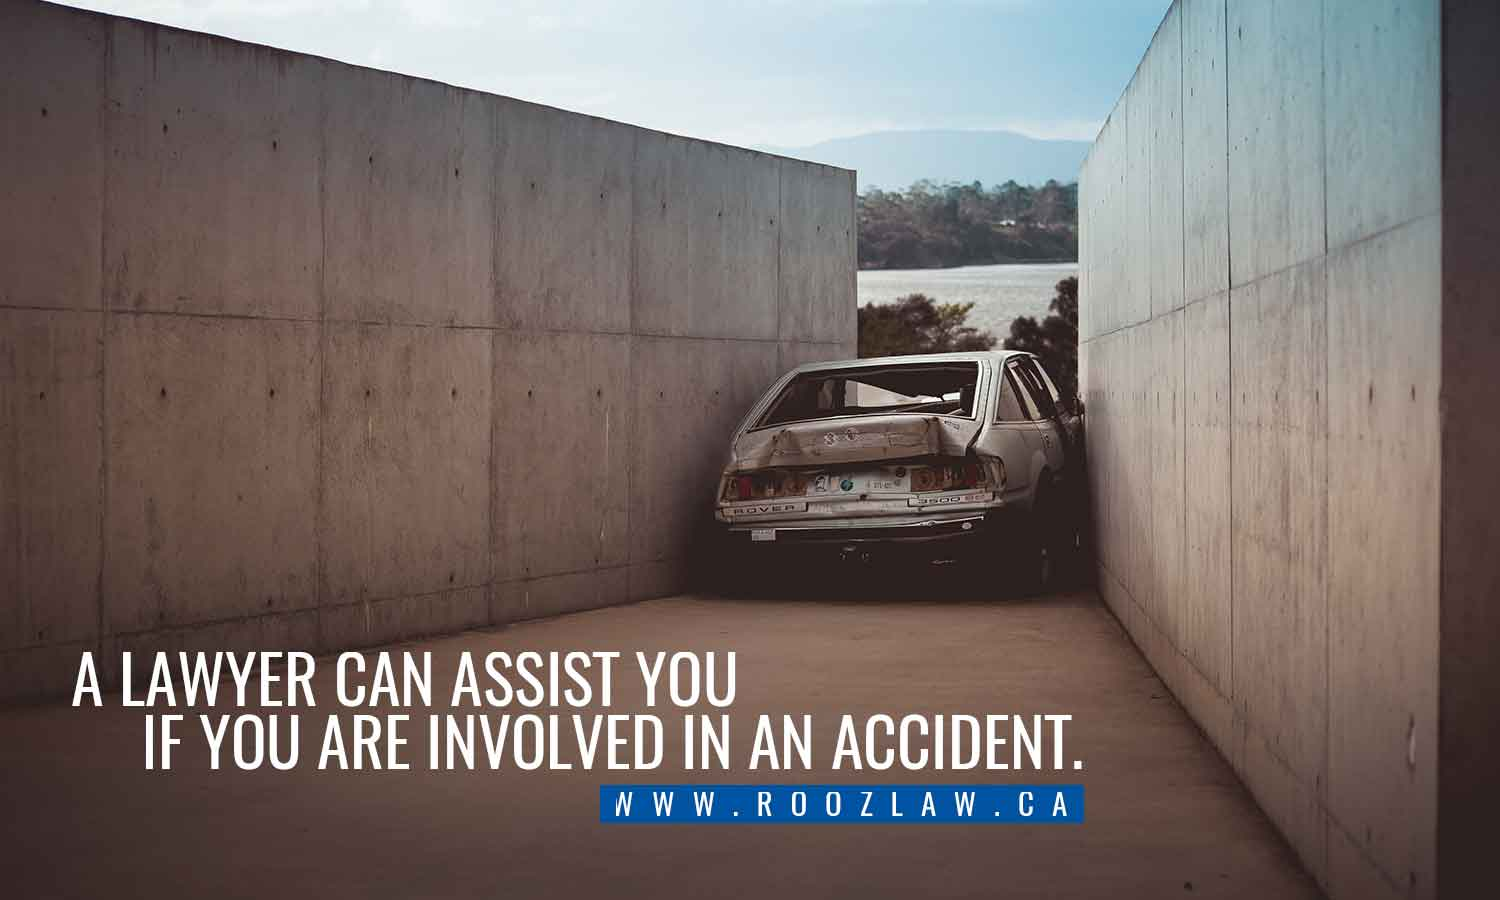 lawyer assist involved accident